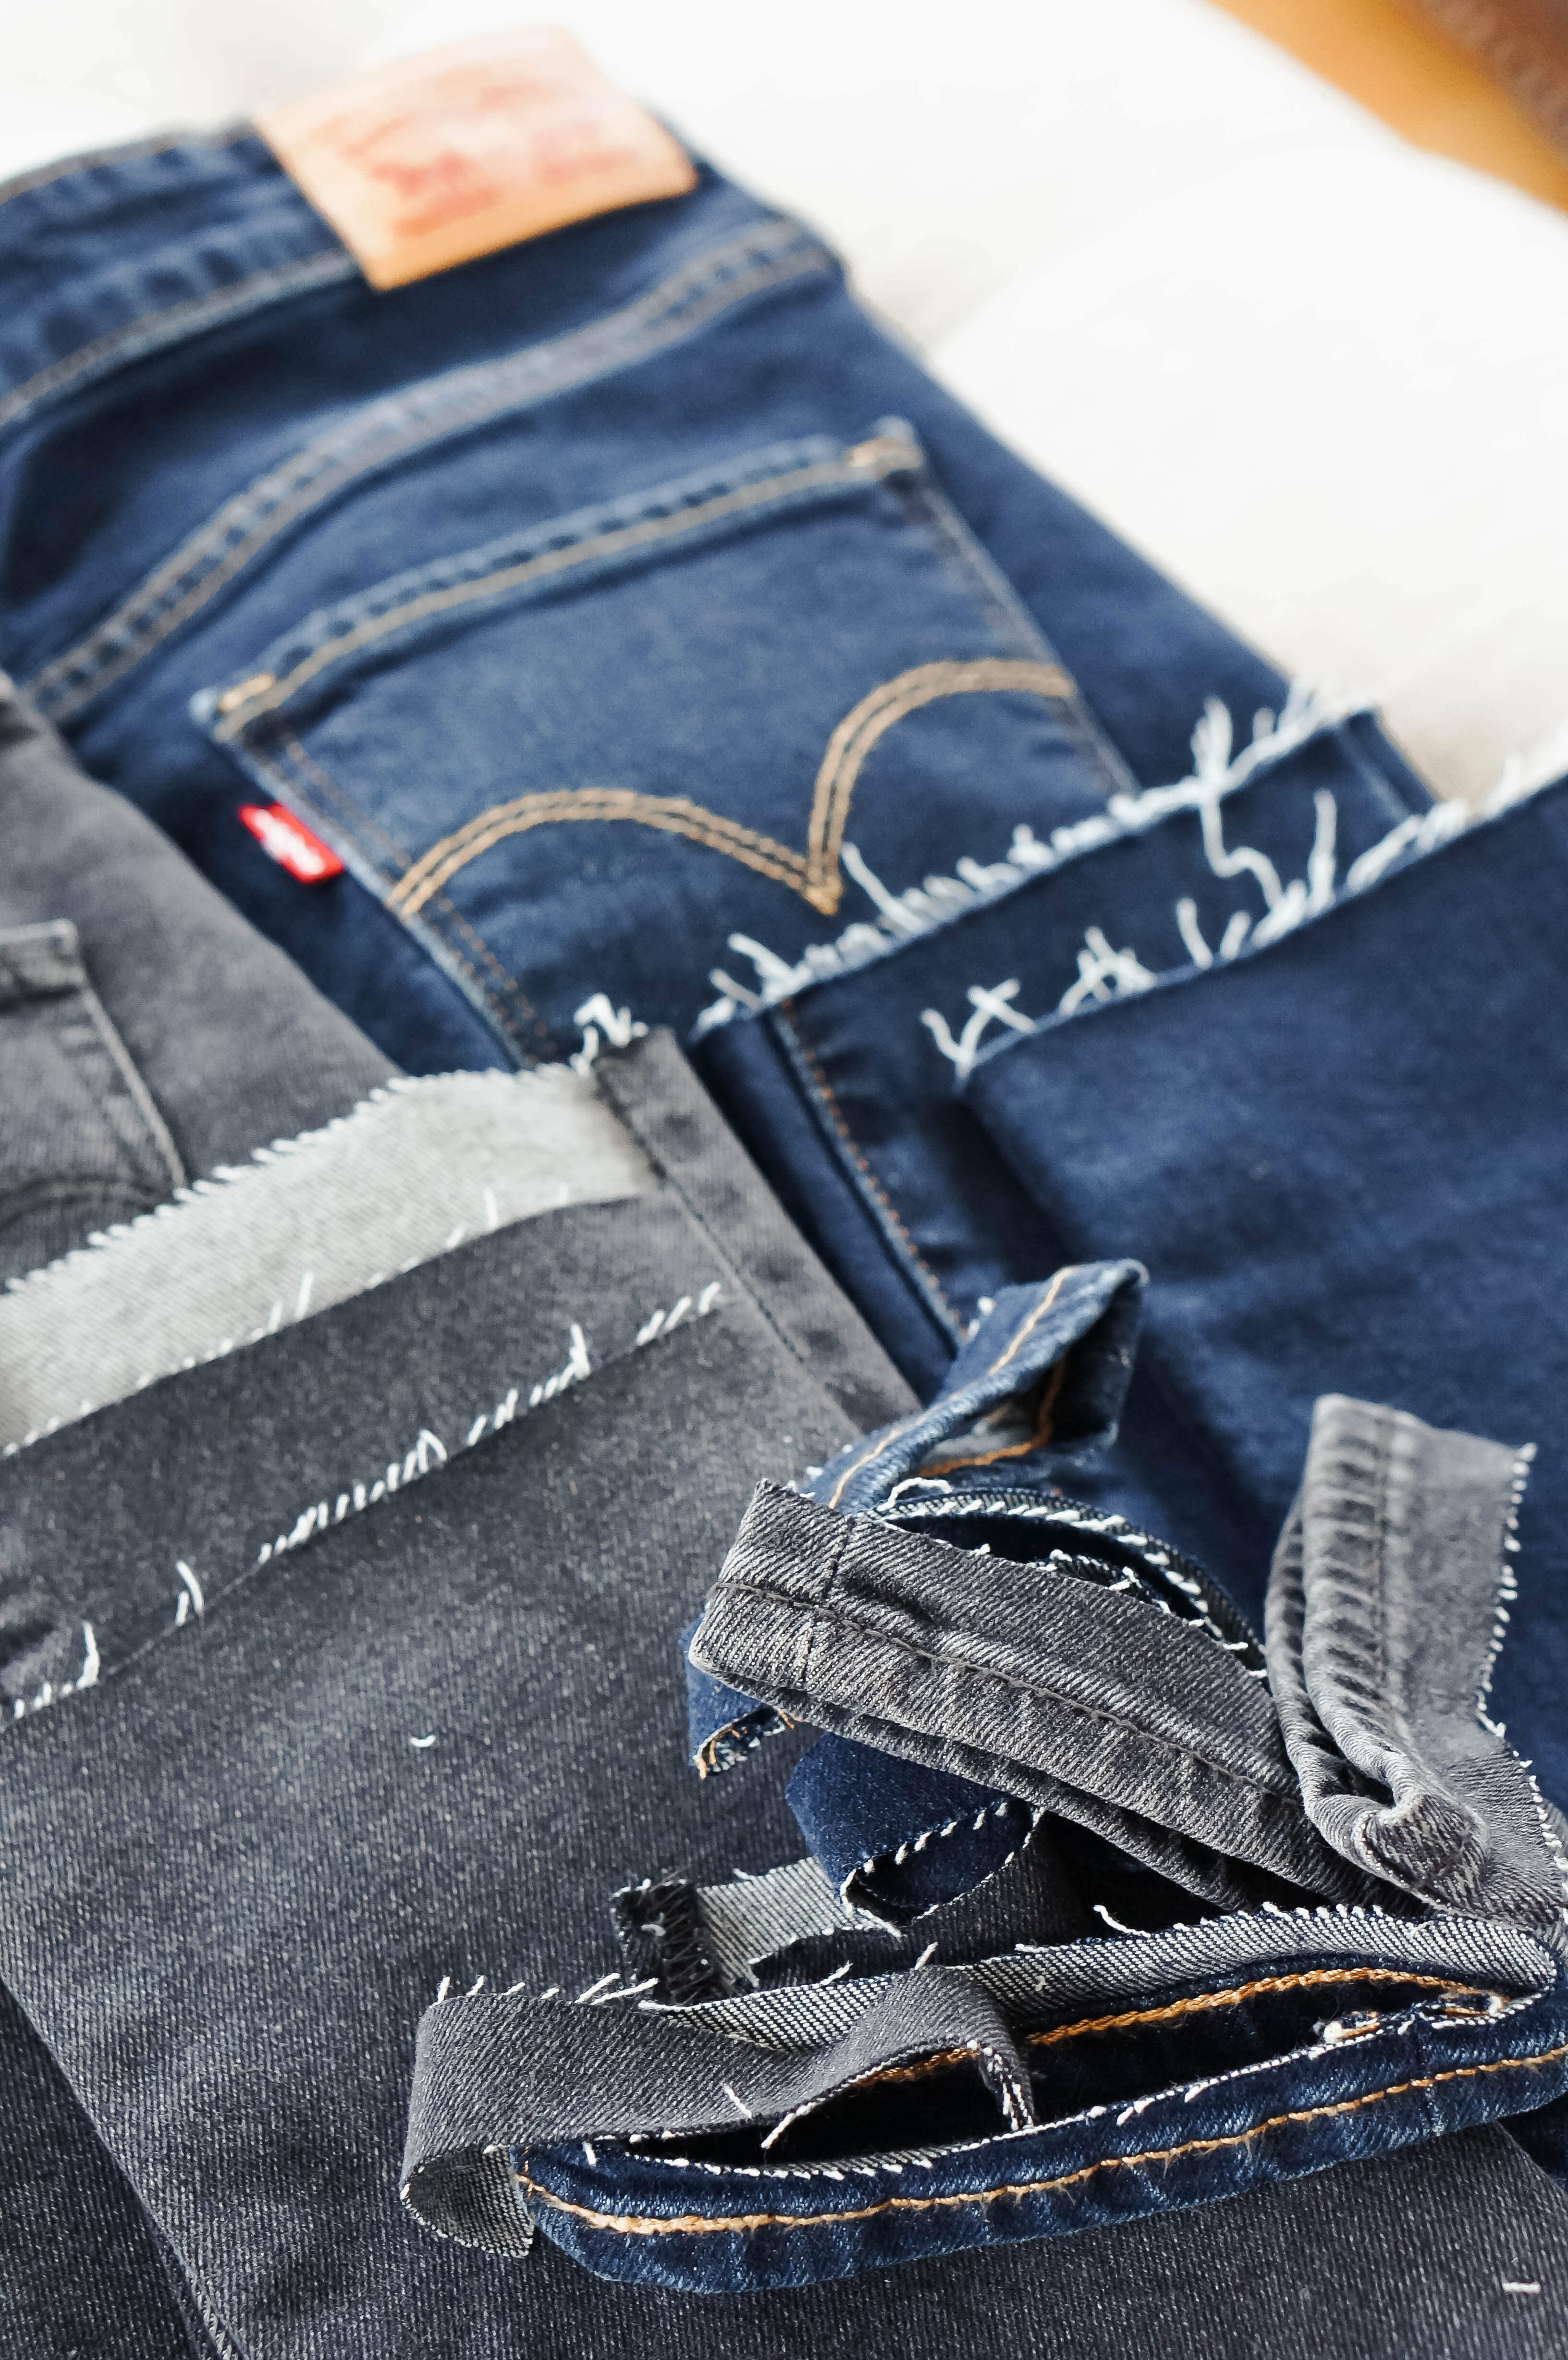 DIY: How To Cut The Hem Off Jeans | Red White & Denim